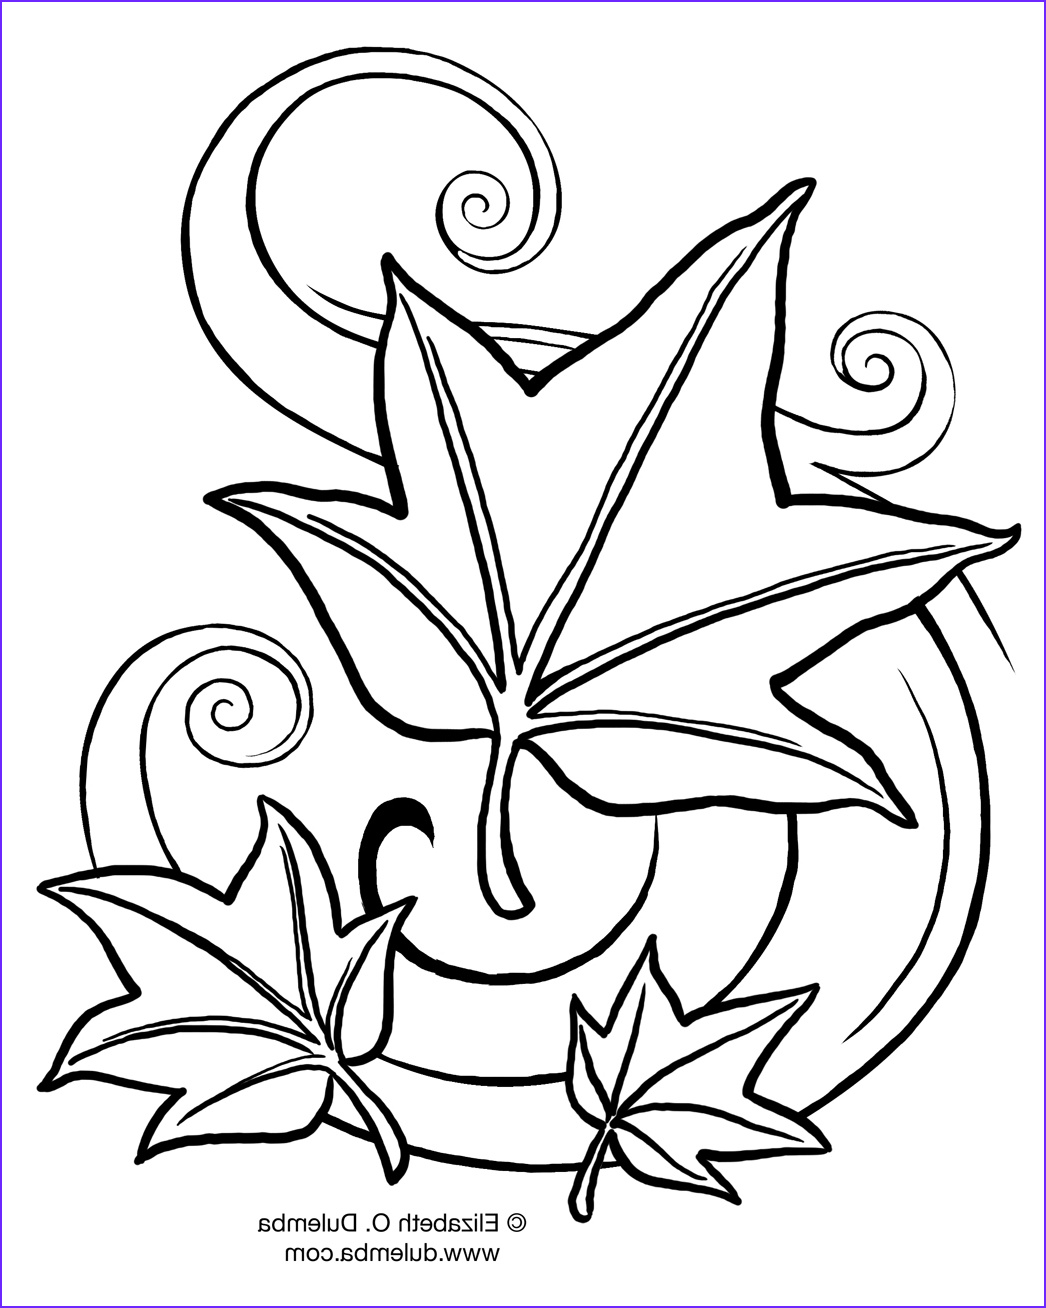 Autumn Coloring Pages Best Of Collection Free Fall Coloring Pages for Kids Disney Coloring Pages